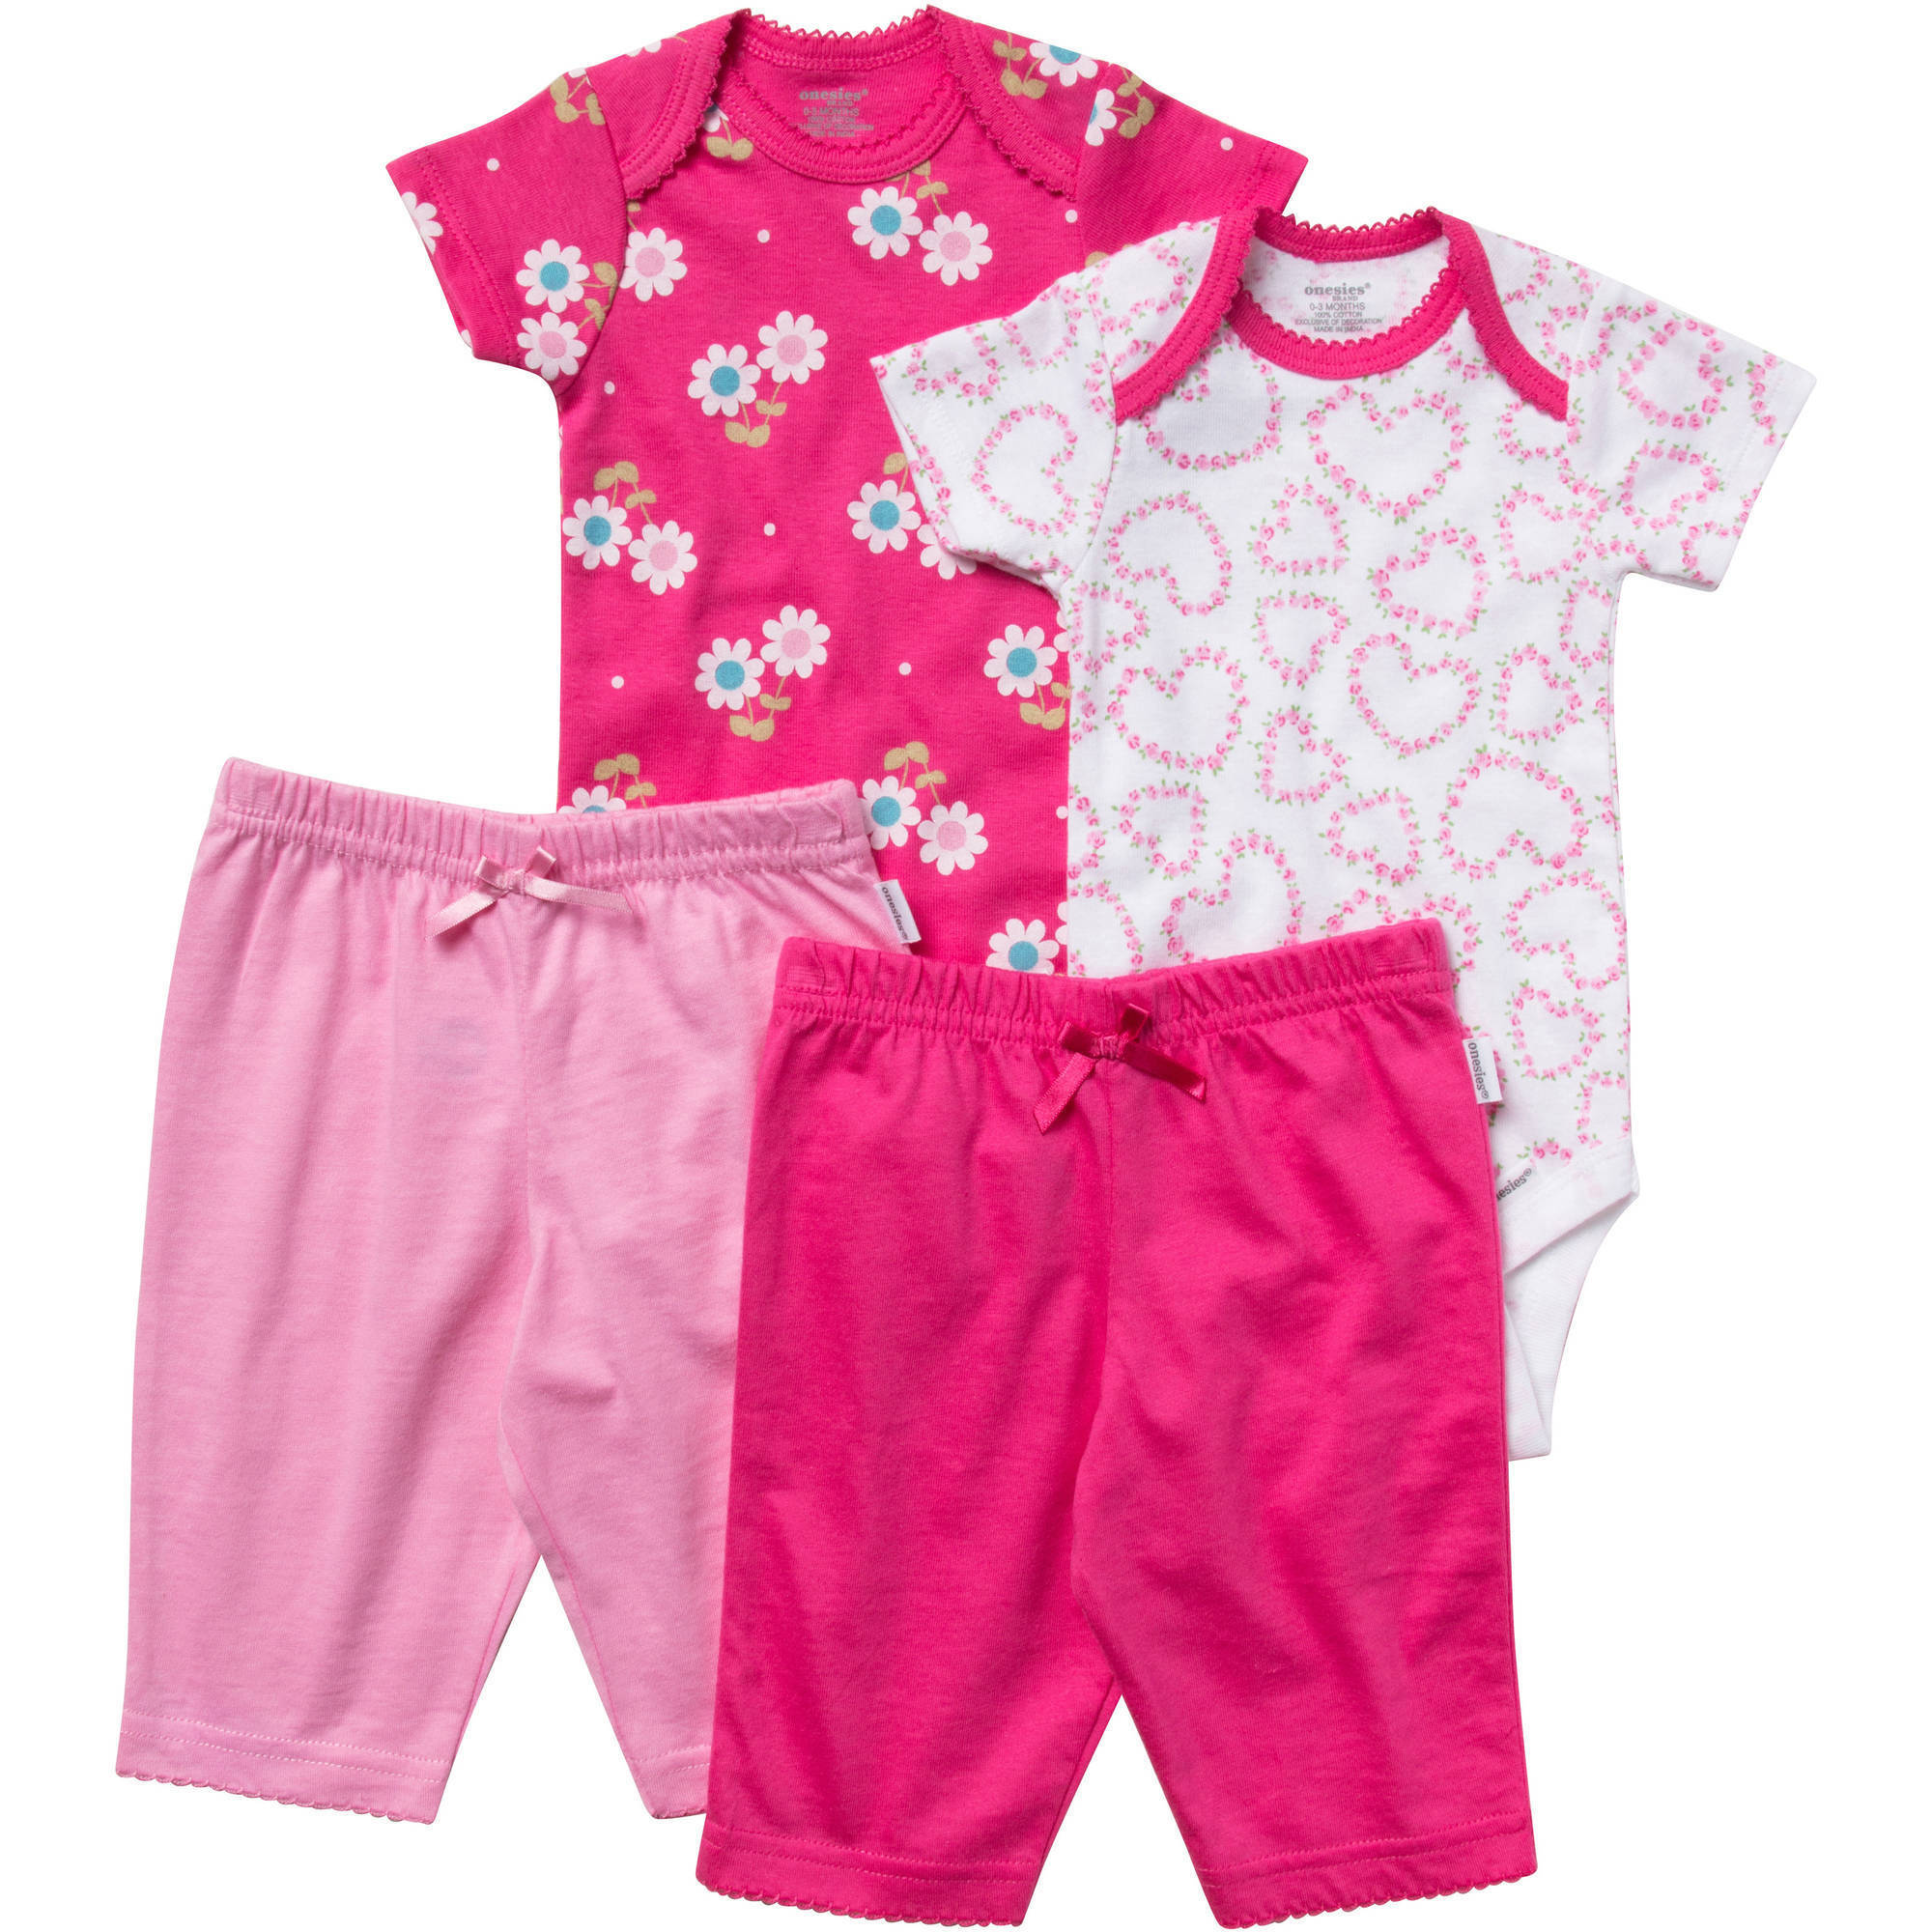 Onesies Brand Newborn Baby Girl Layette Set, 4 Pc